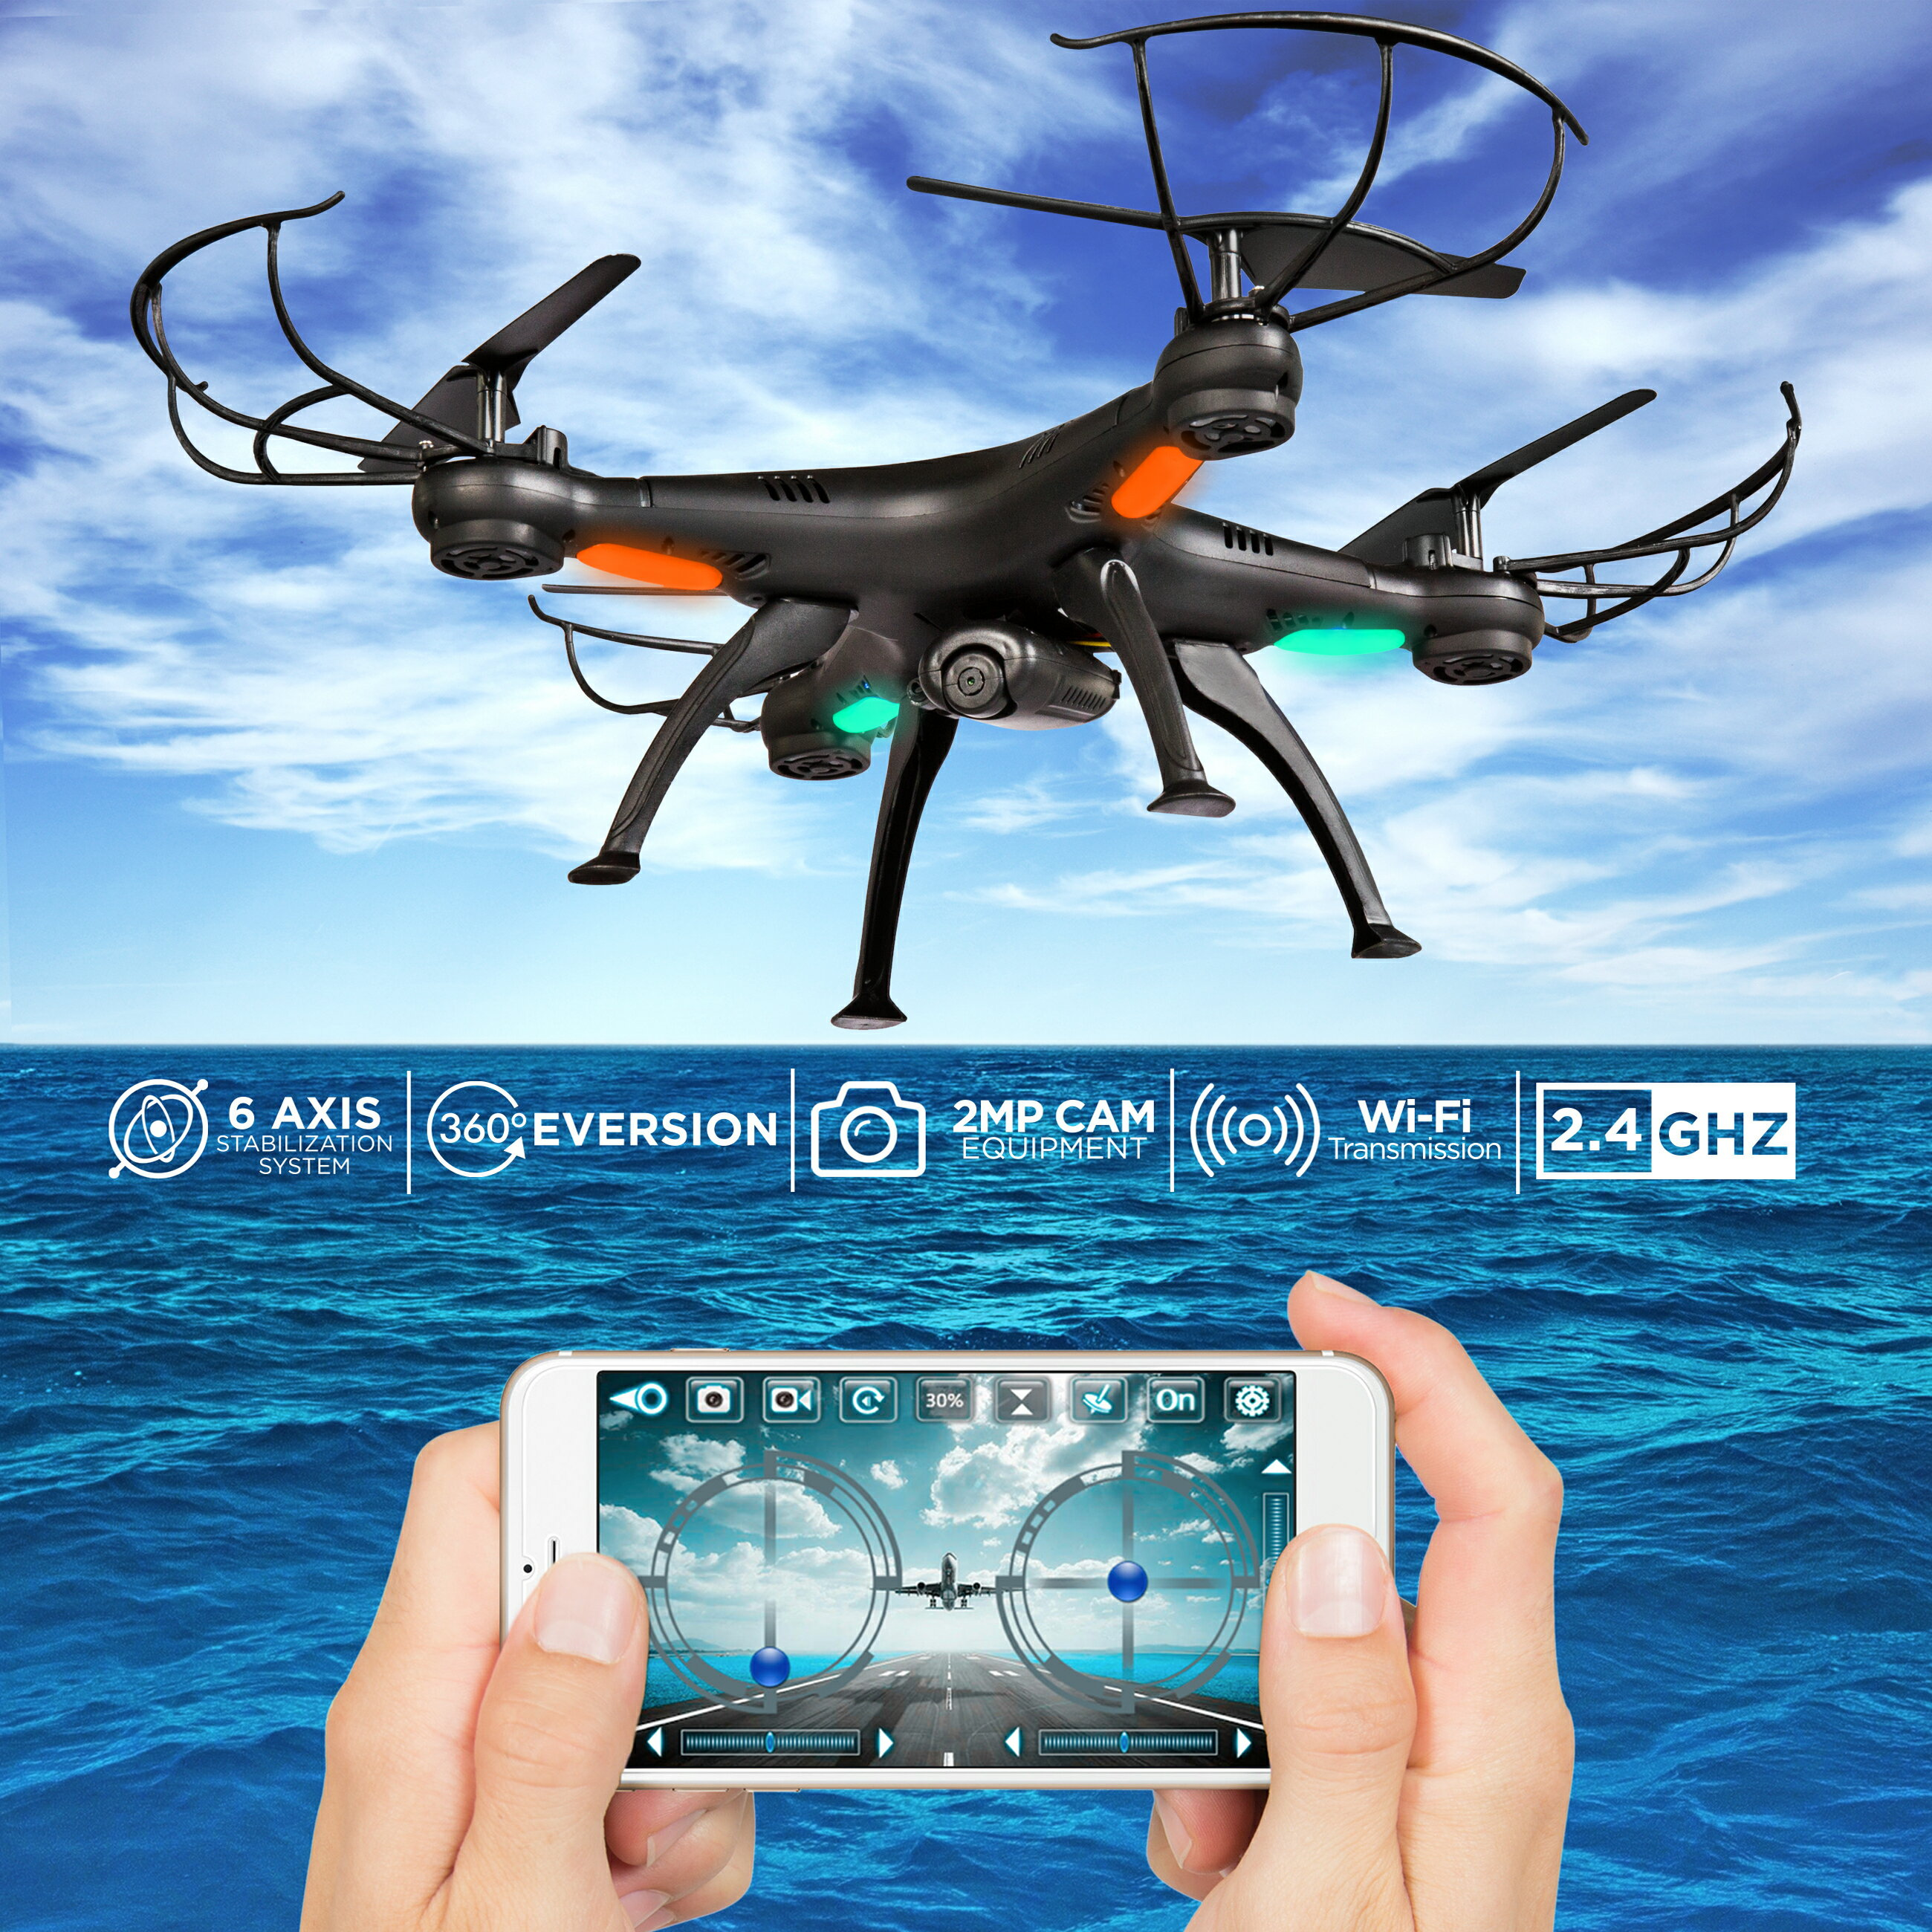 Drone Altitude Hold 2.4G 6-Axis FPV 720P HD Live Video WIFI Camera RC Voice Command Quadcopter, 2 Batteries & Power Bank 0